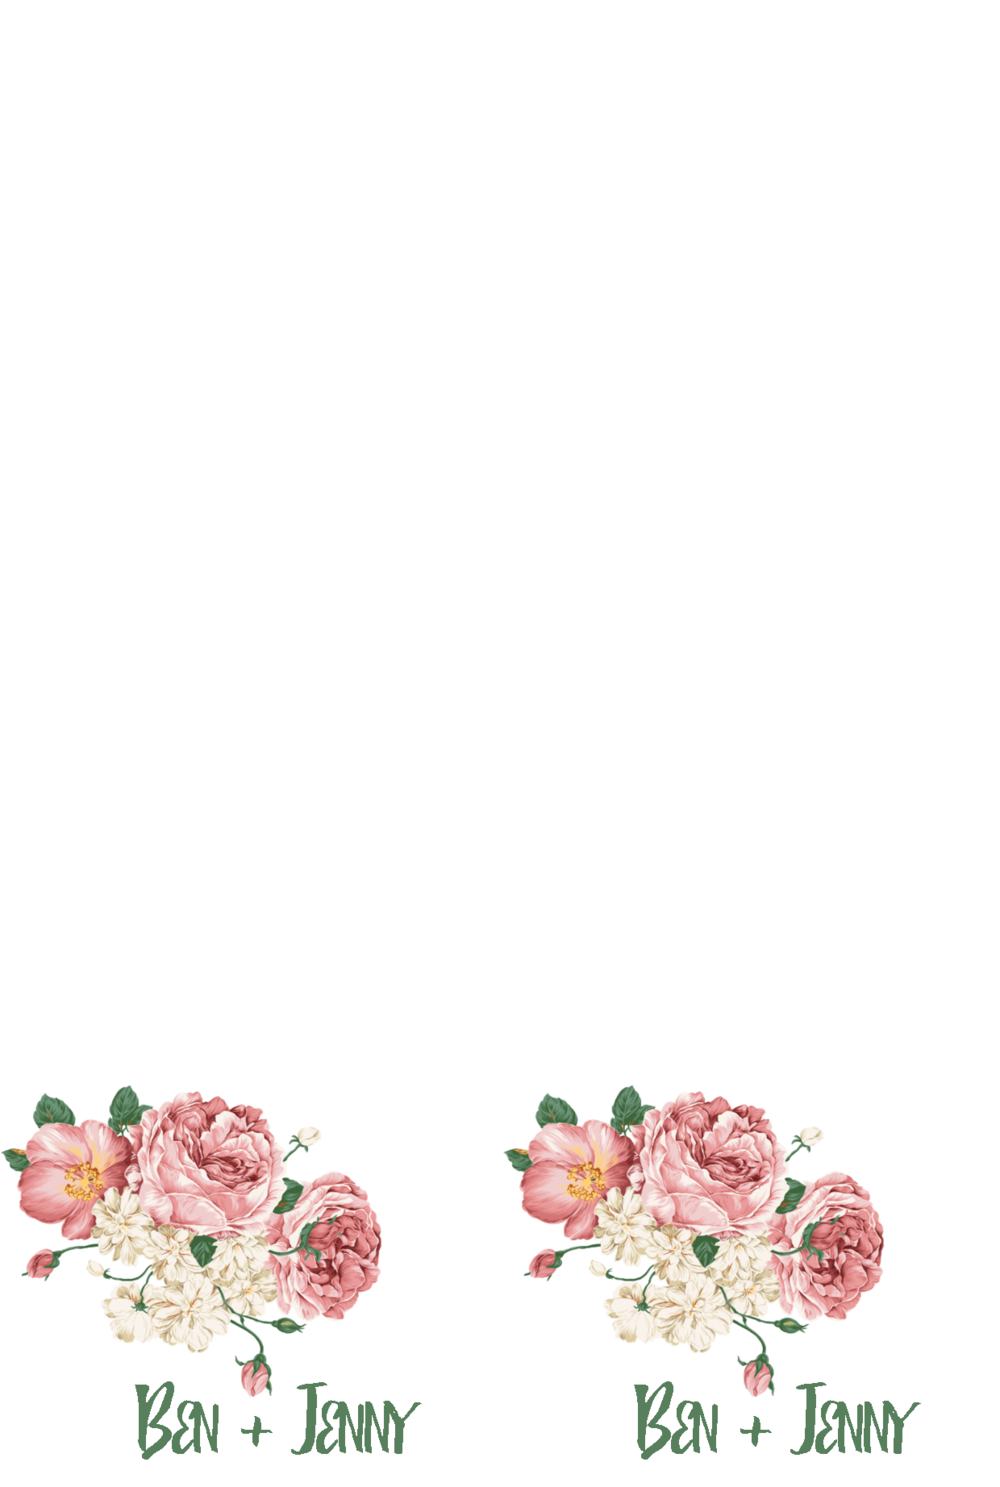 Floral Names1.png